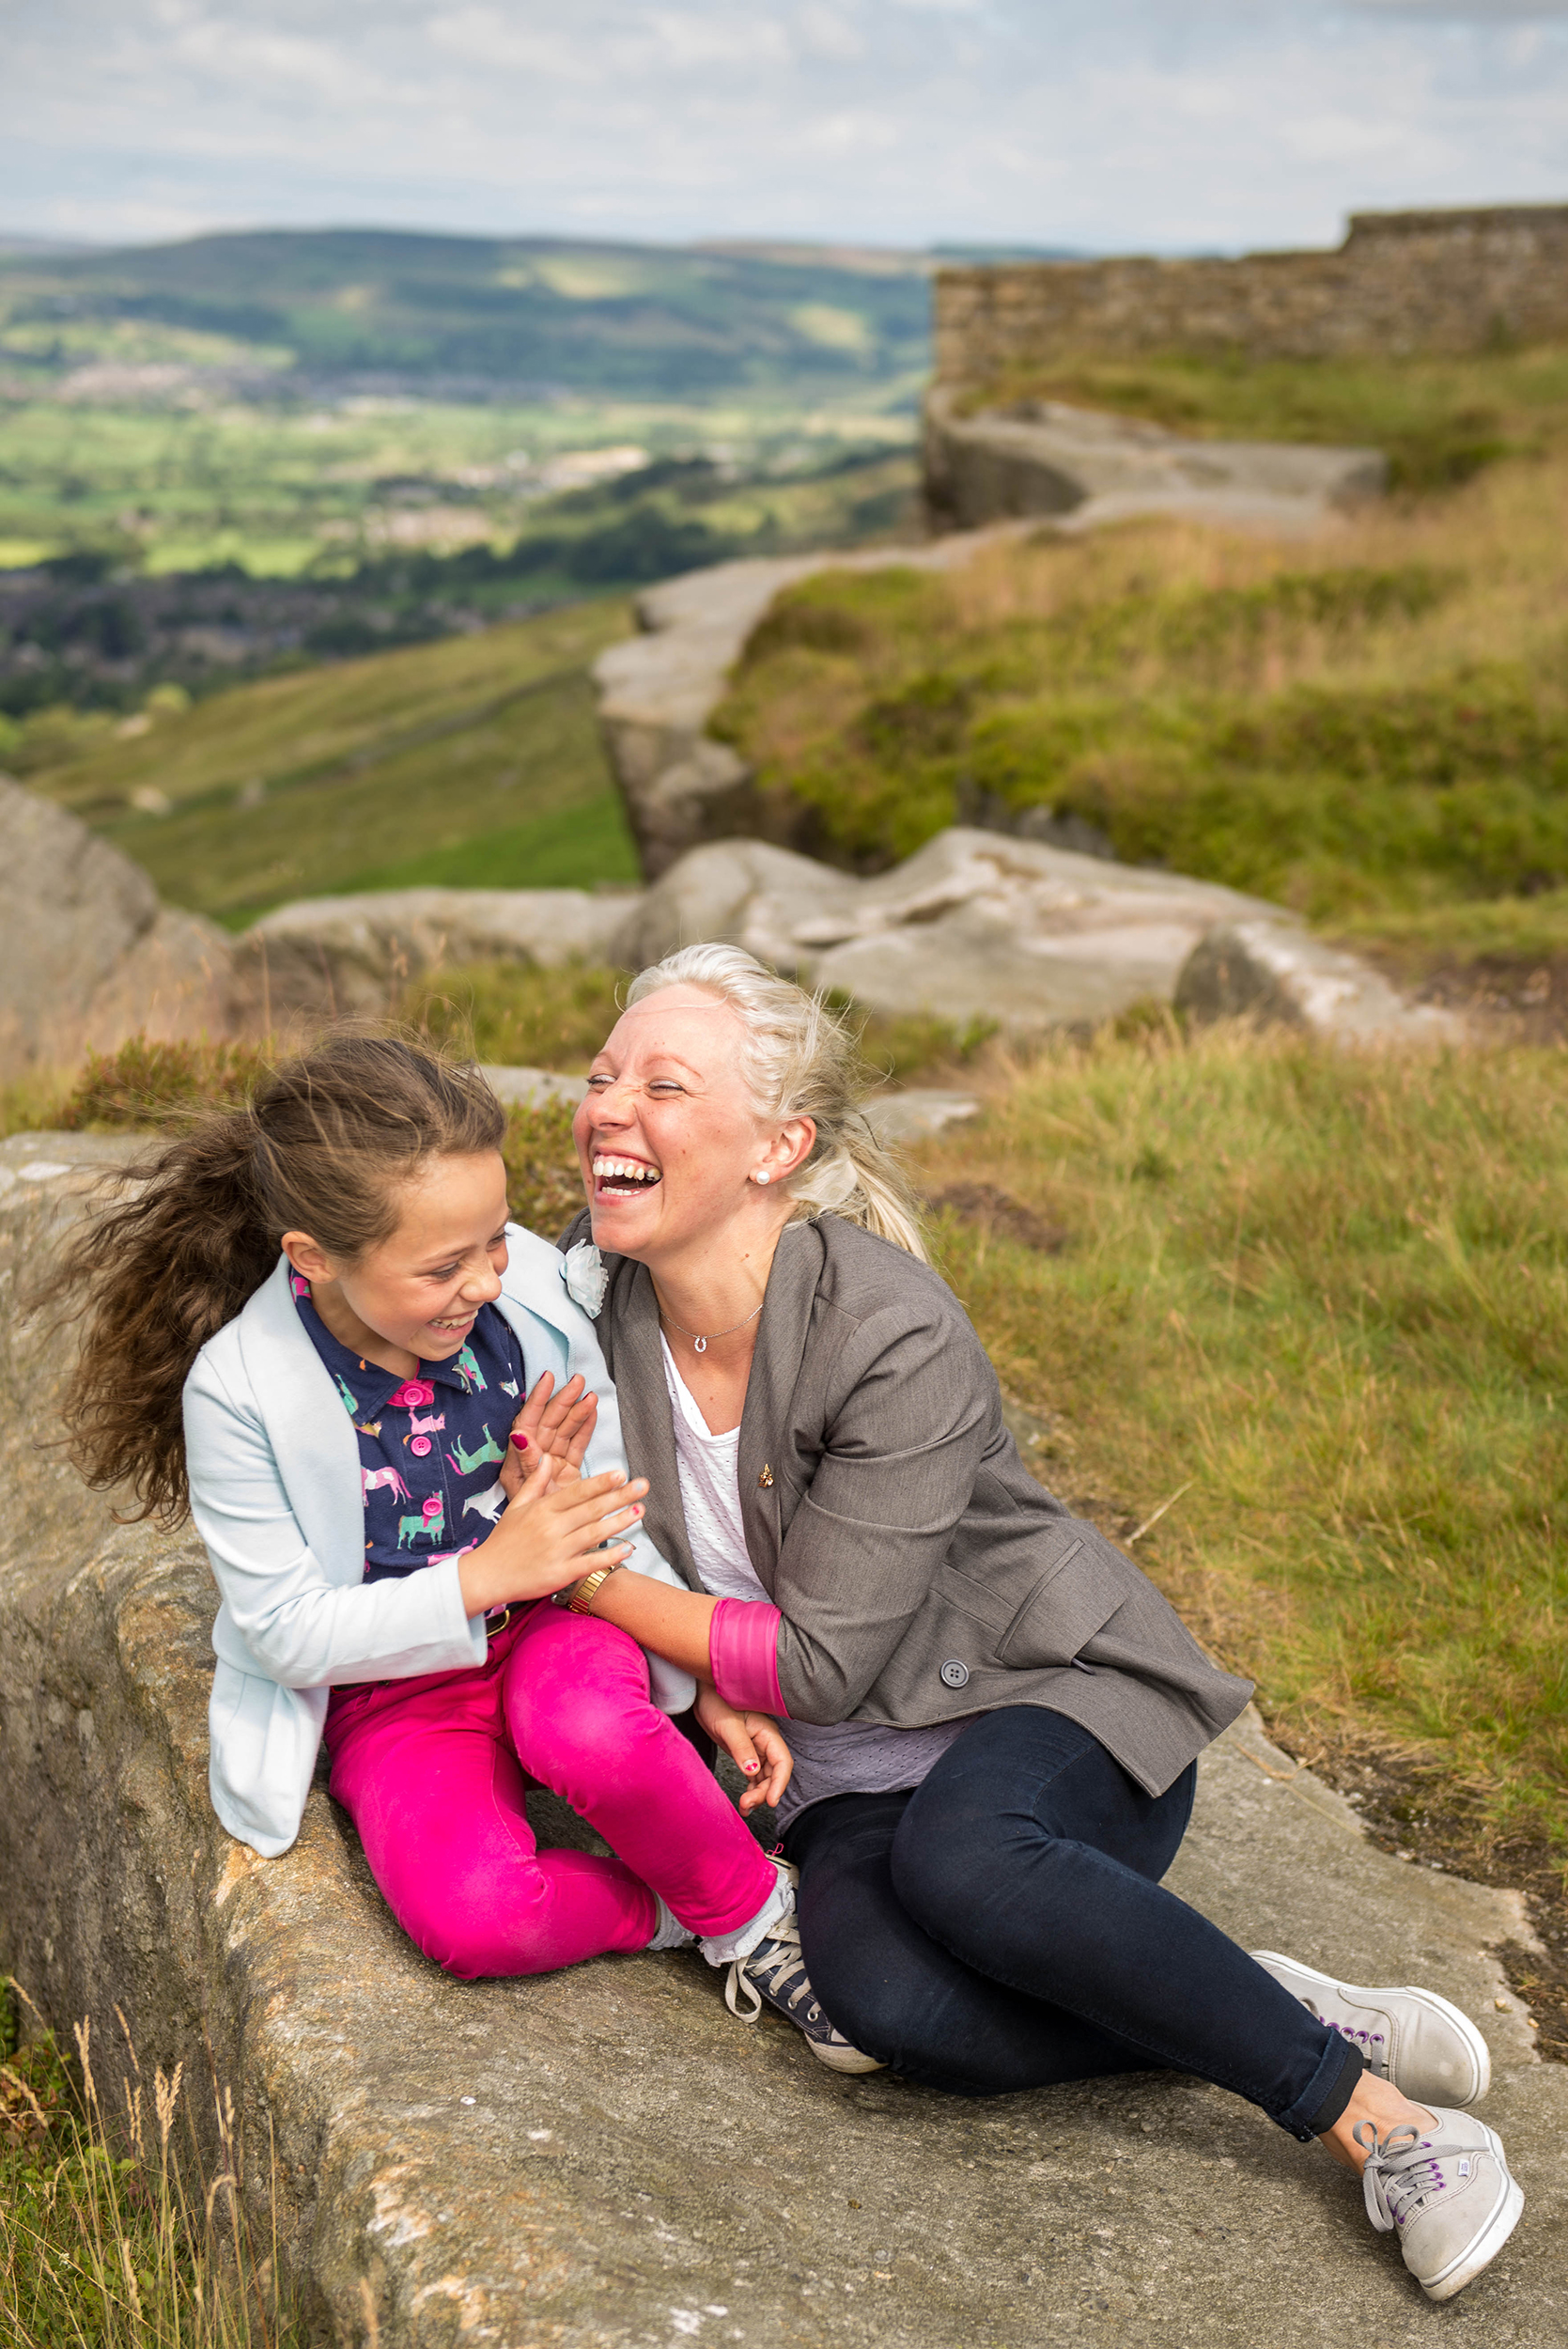 Copy of mum and daughter laughing at cowling pinnacle